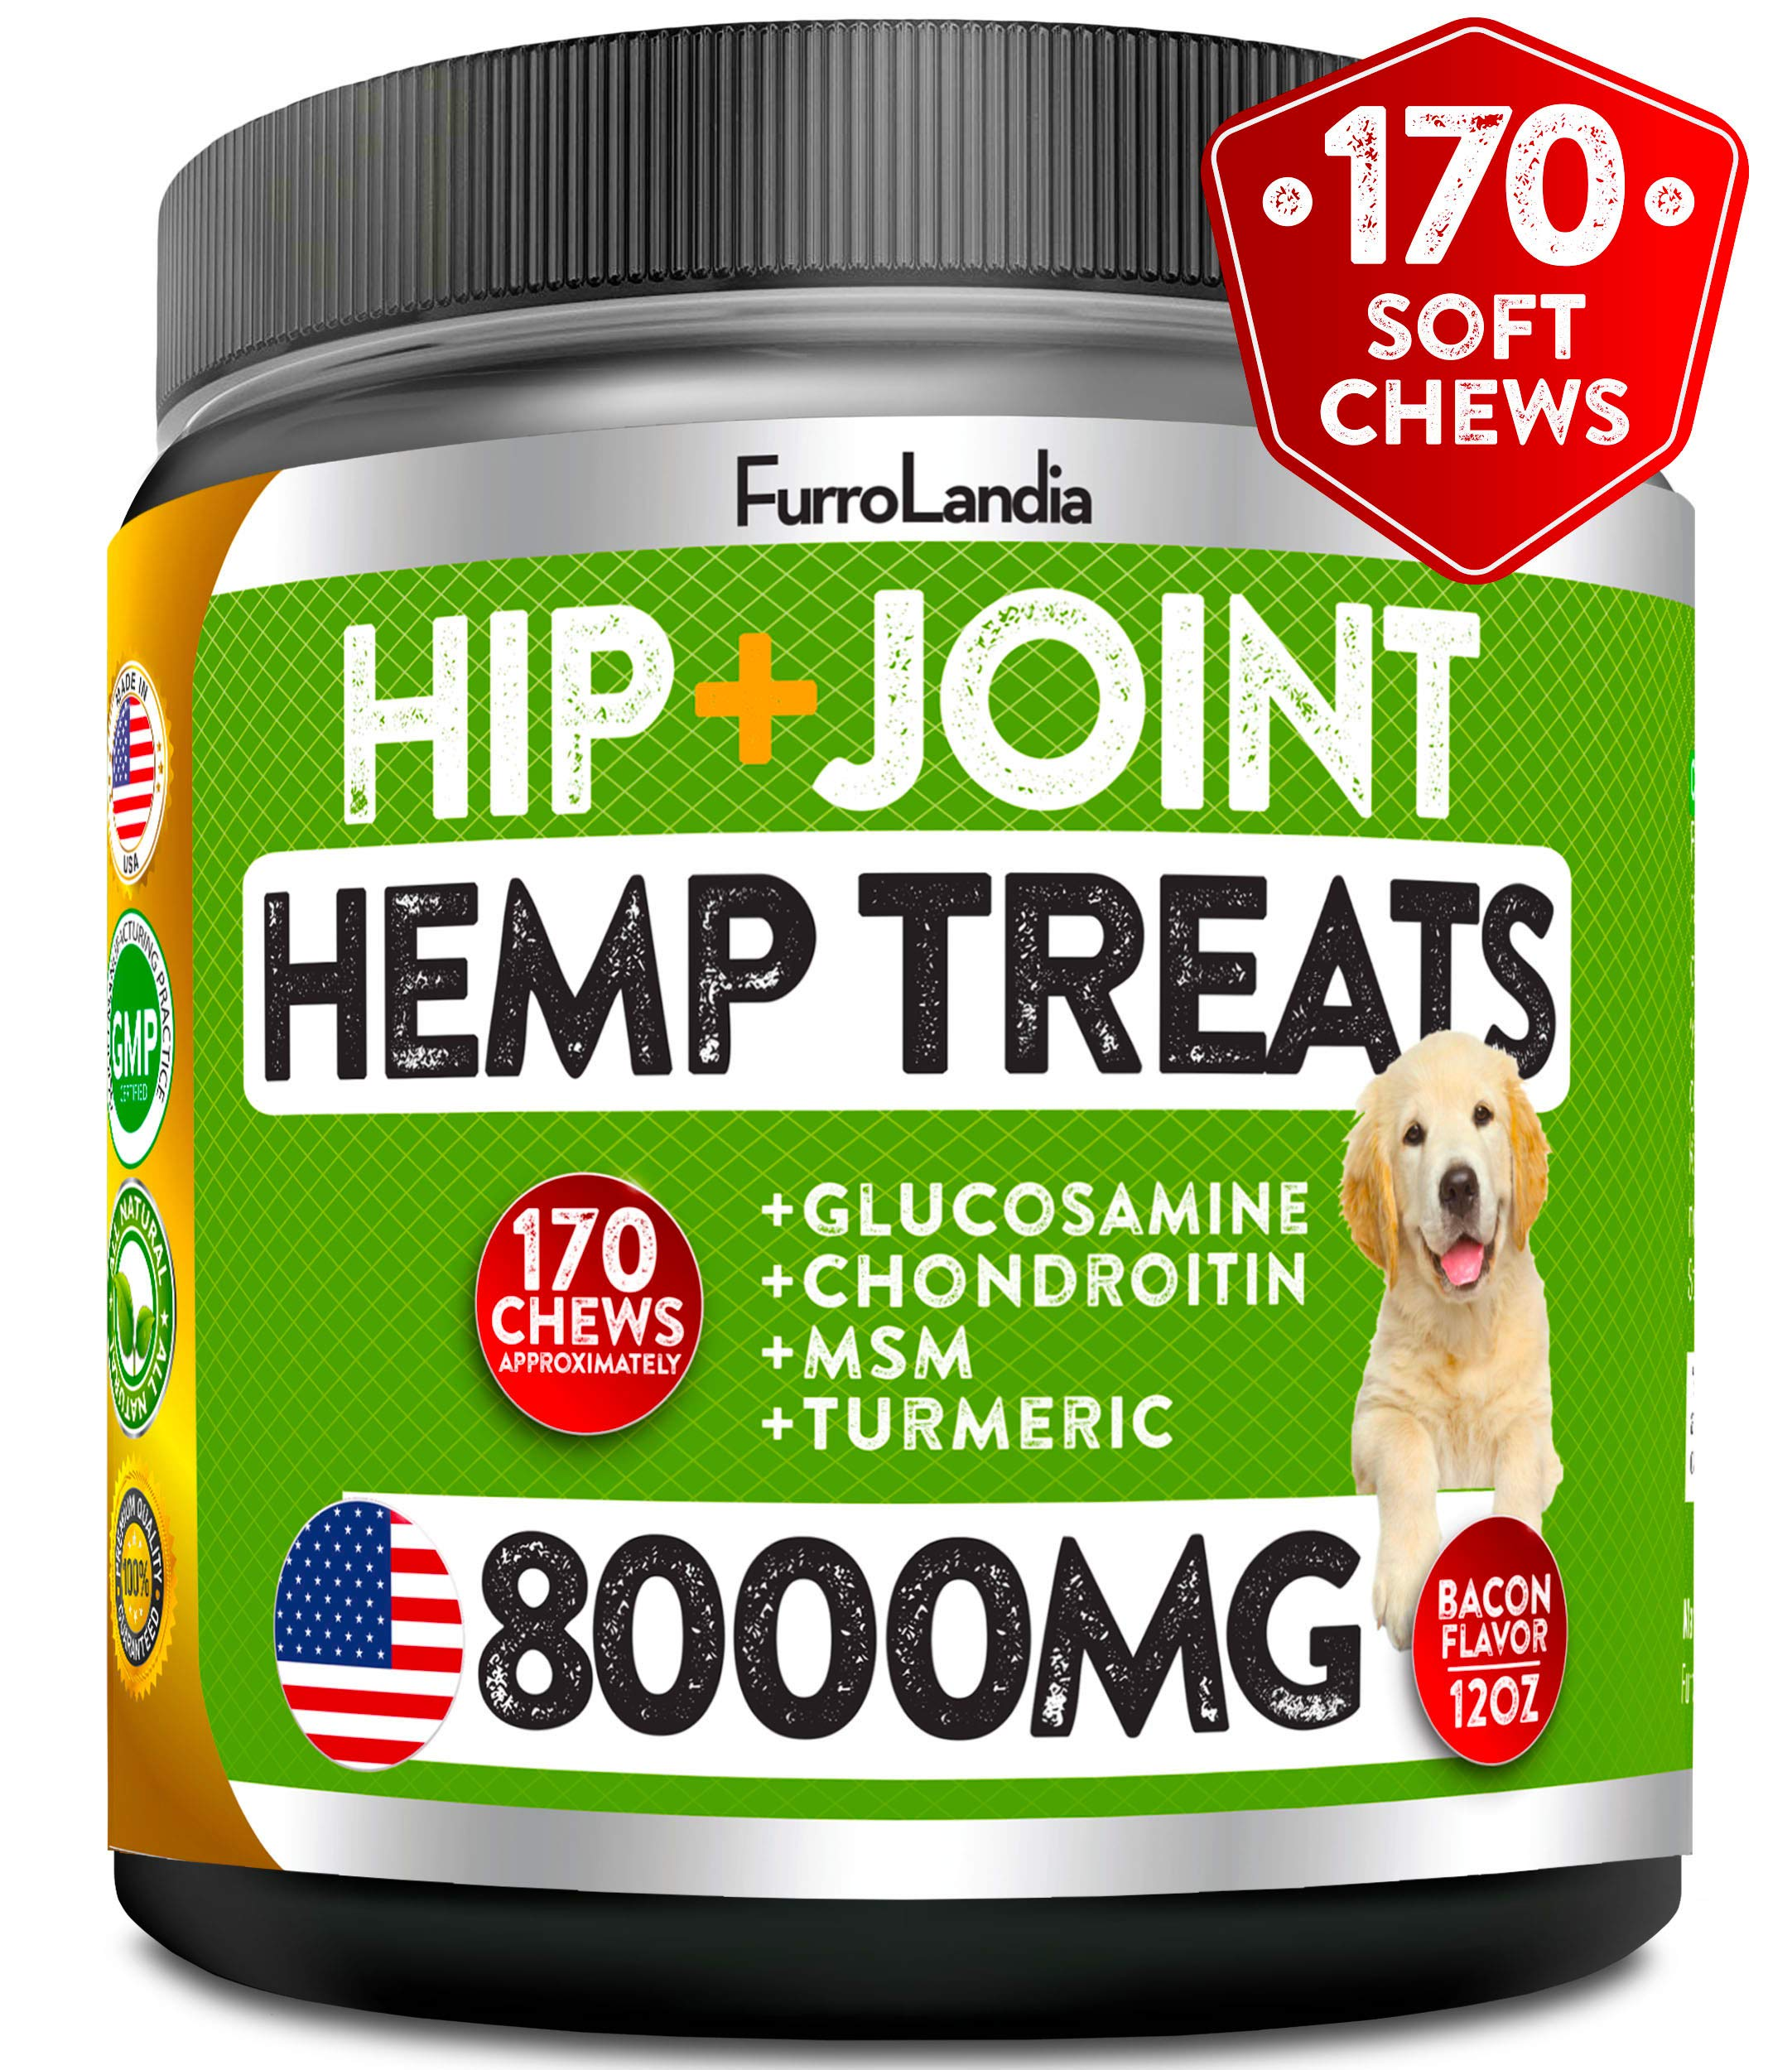 FurroLandia Hemp Hip & Joint Supplement for Dogs - 170 Soft Chews - Made in USA - Glucosamine for Dogs - Chondroitin - MSM - Turmeric - Hemp Seed Oil - Natural Pain Relief & Mobility by FurroLandia